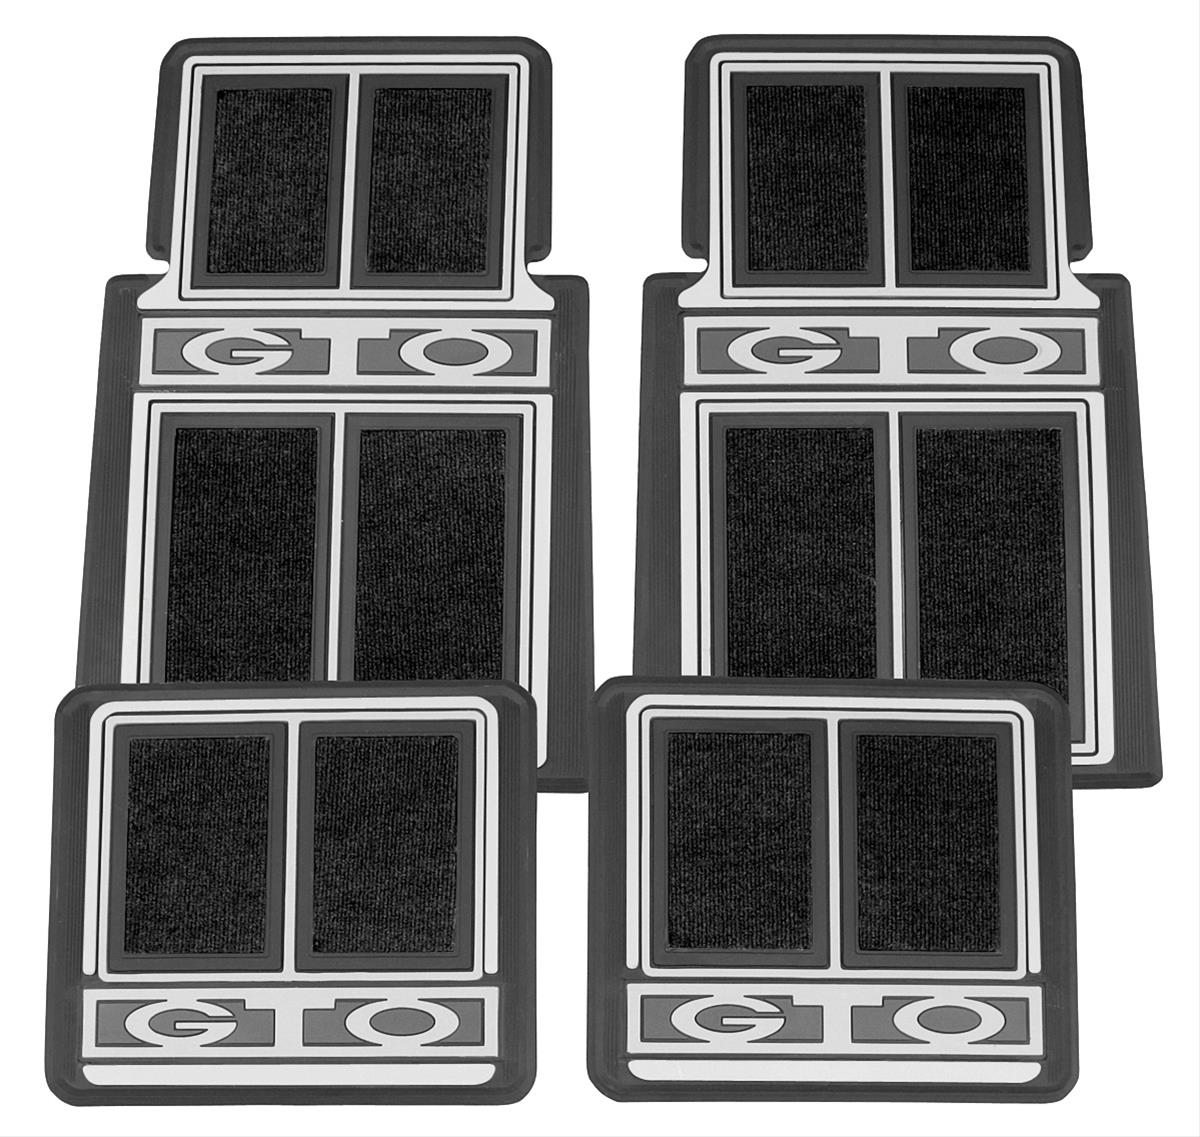 1965 pontiac gto original parts group heavy duty reproduction 1965 pontiac gto original parts group heavy duty reproduction rubber floor mats cfp0313bk free shipping on orders over 99 at summit racing sciox Image collections